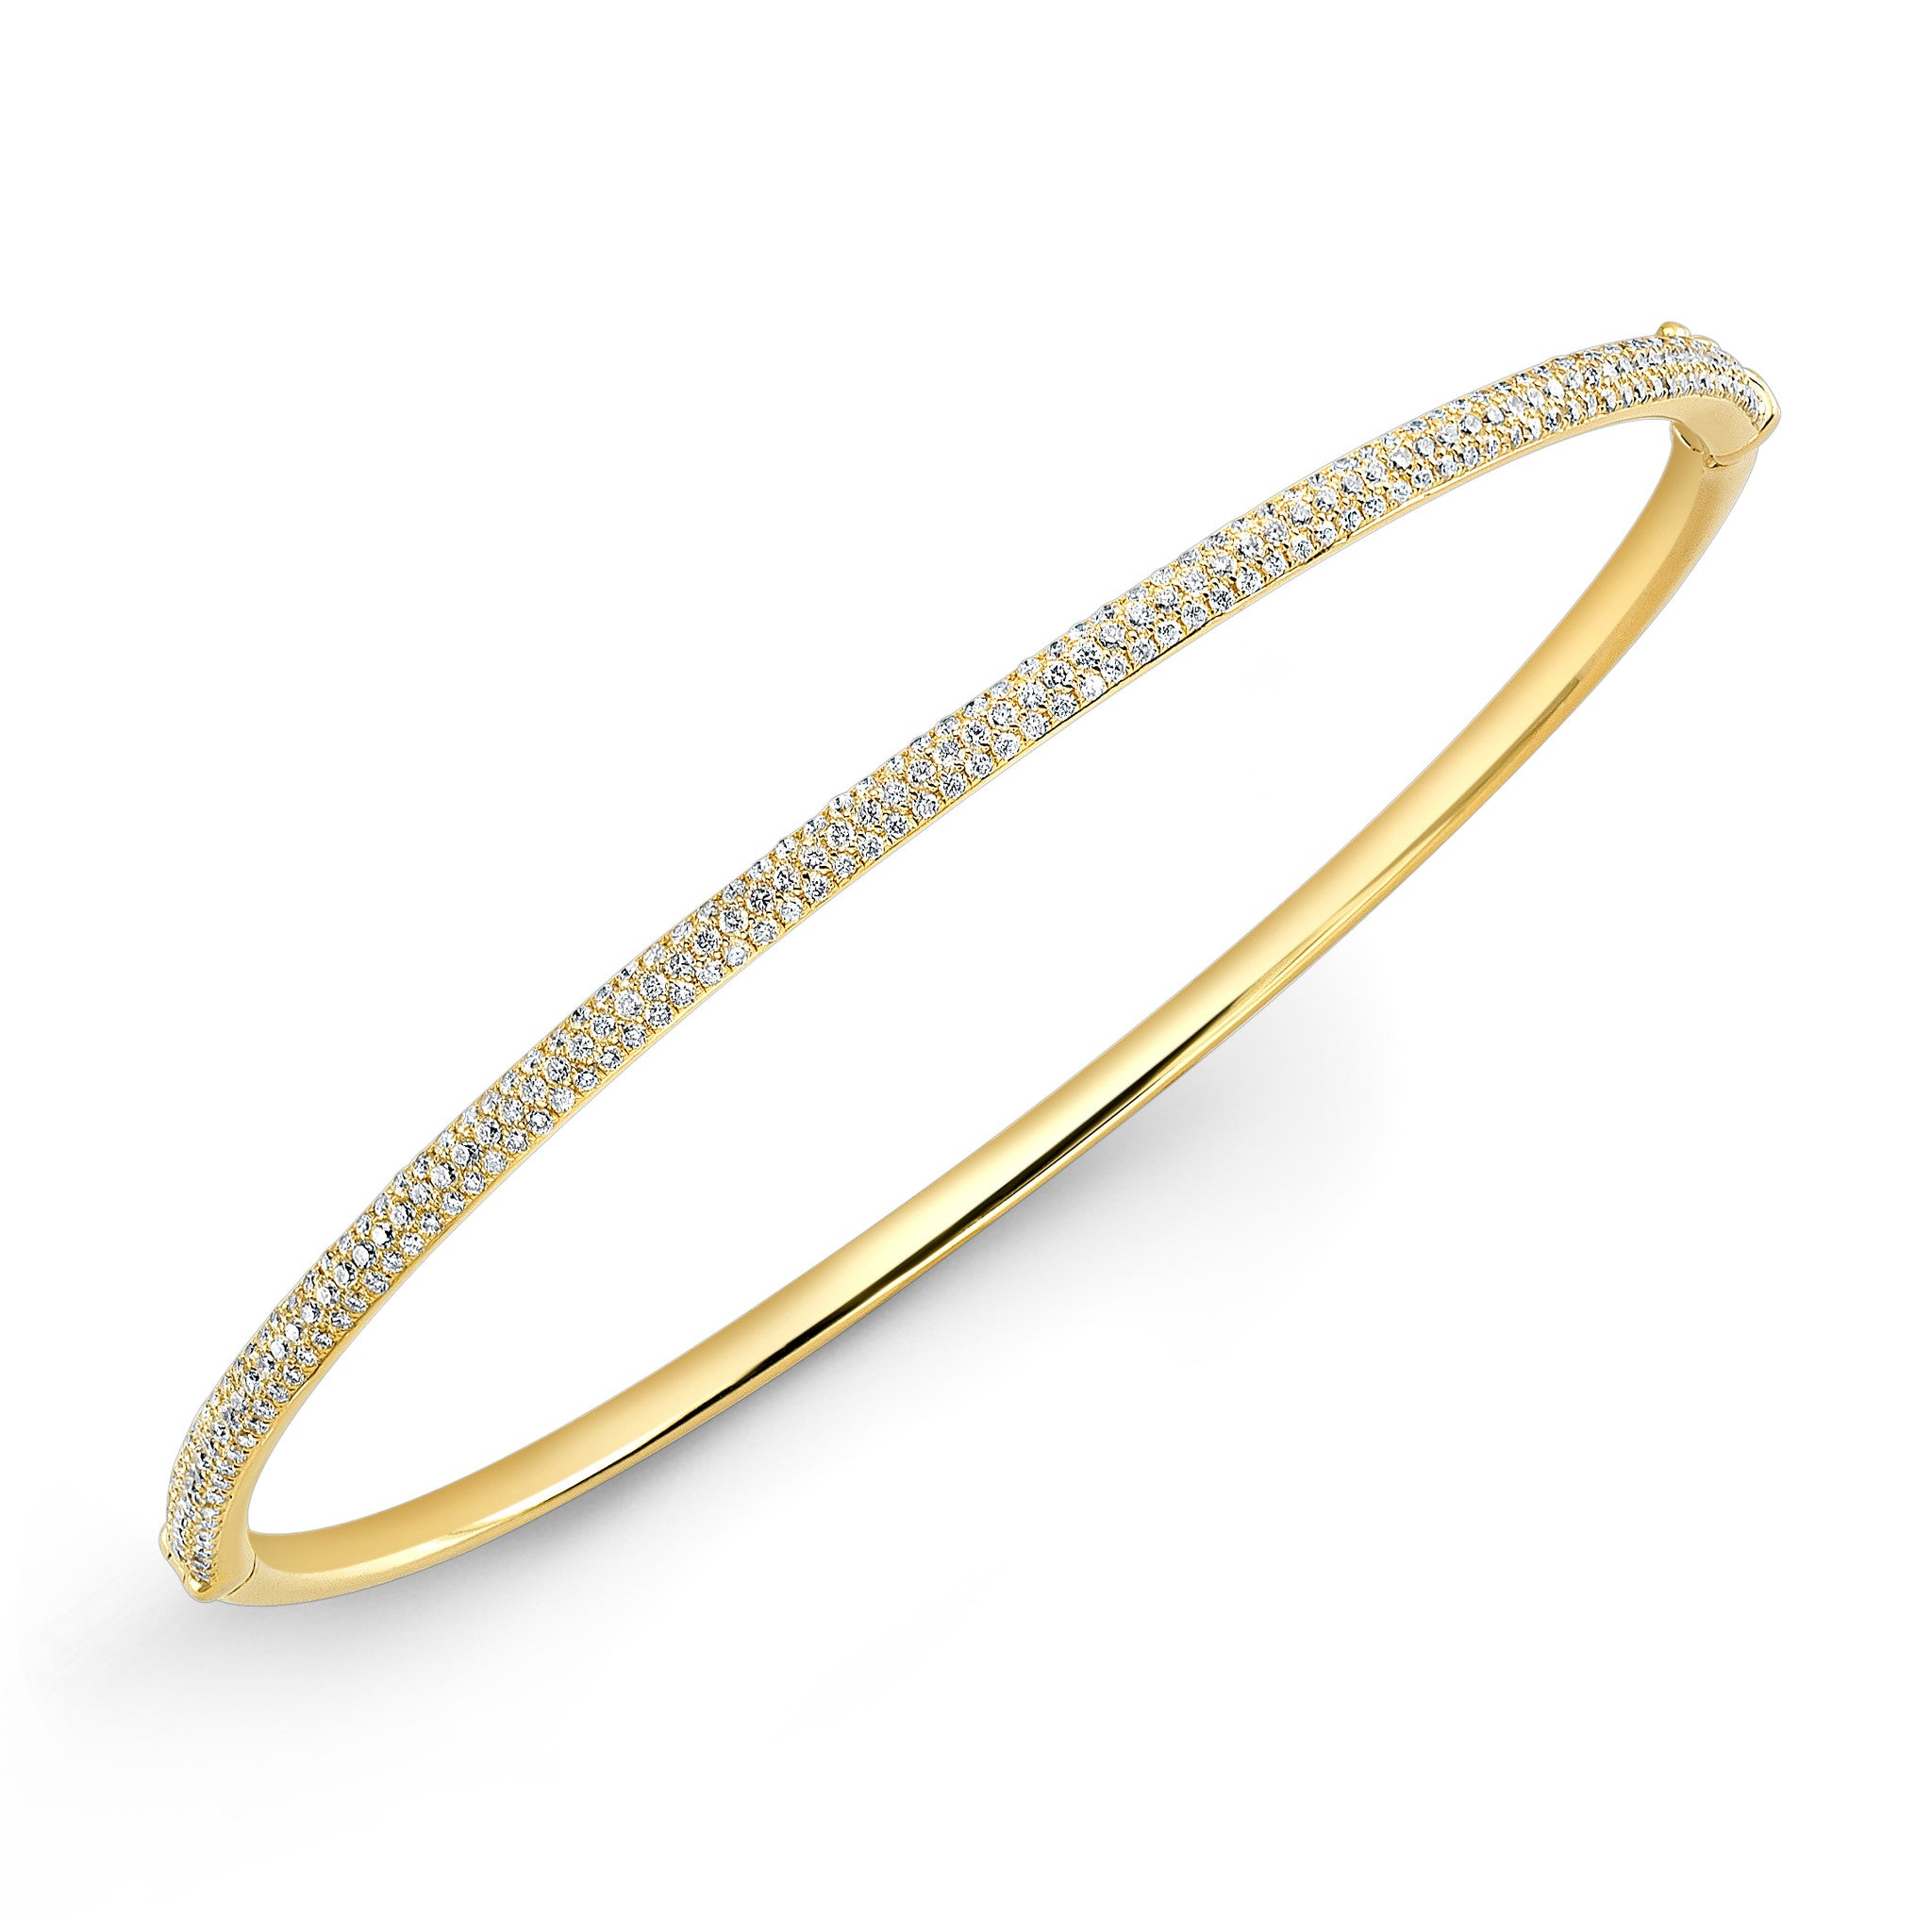 jewelry in gold pave lyst normal brilliance bangles bangle gallery product crossover michael blush bracelet kors